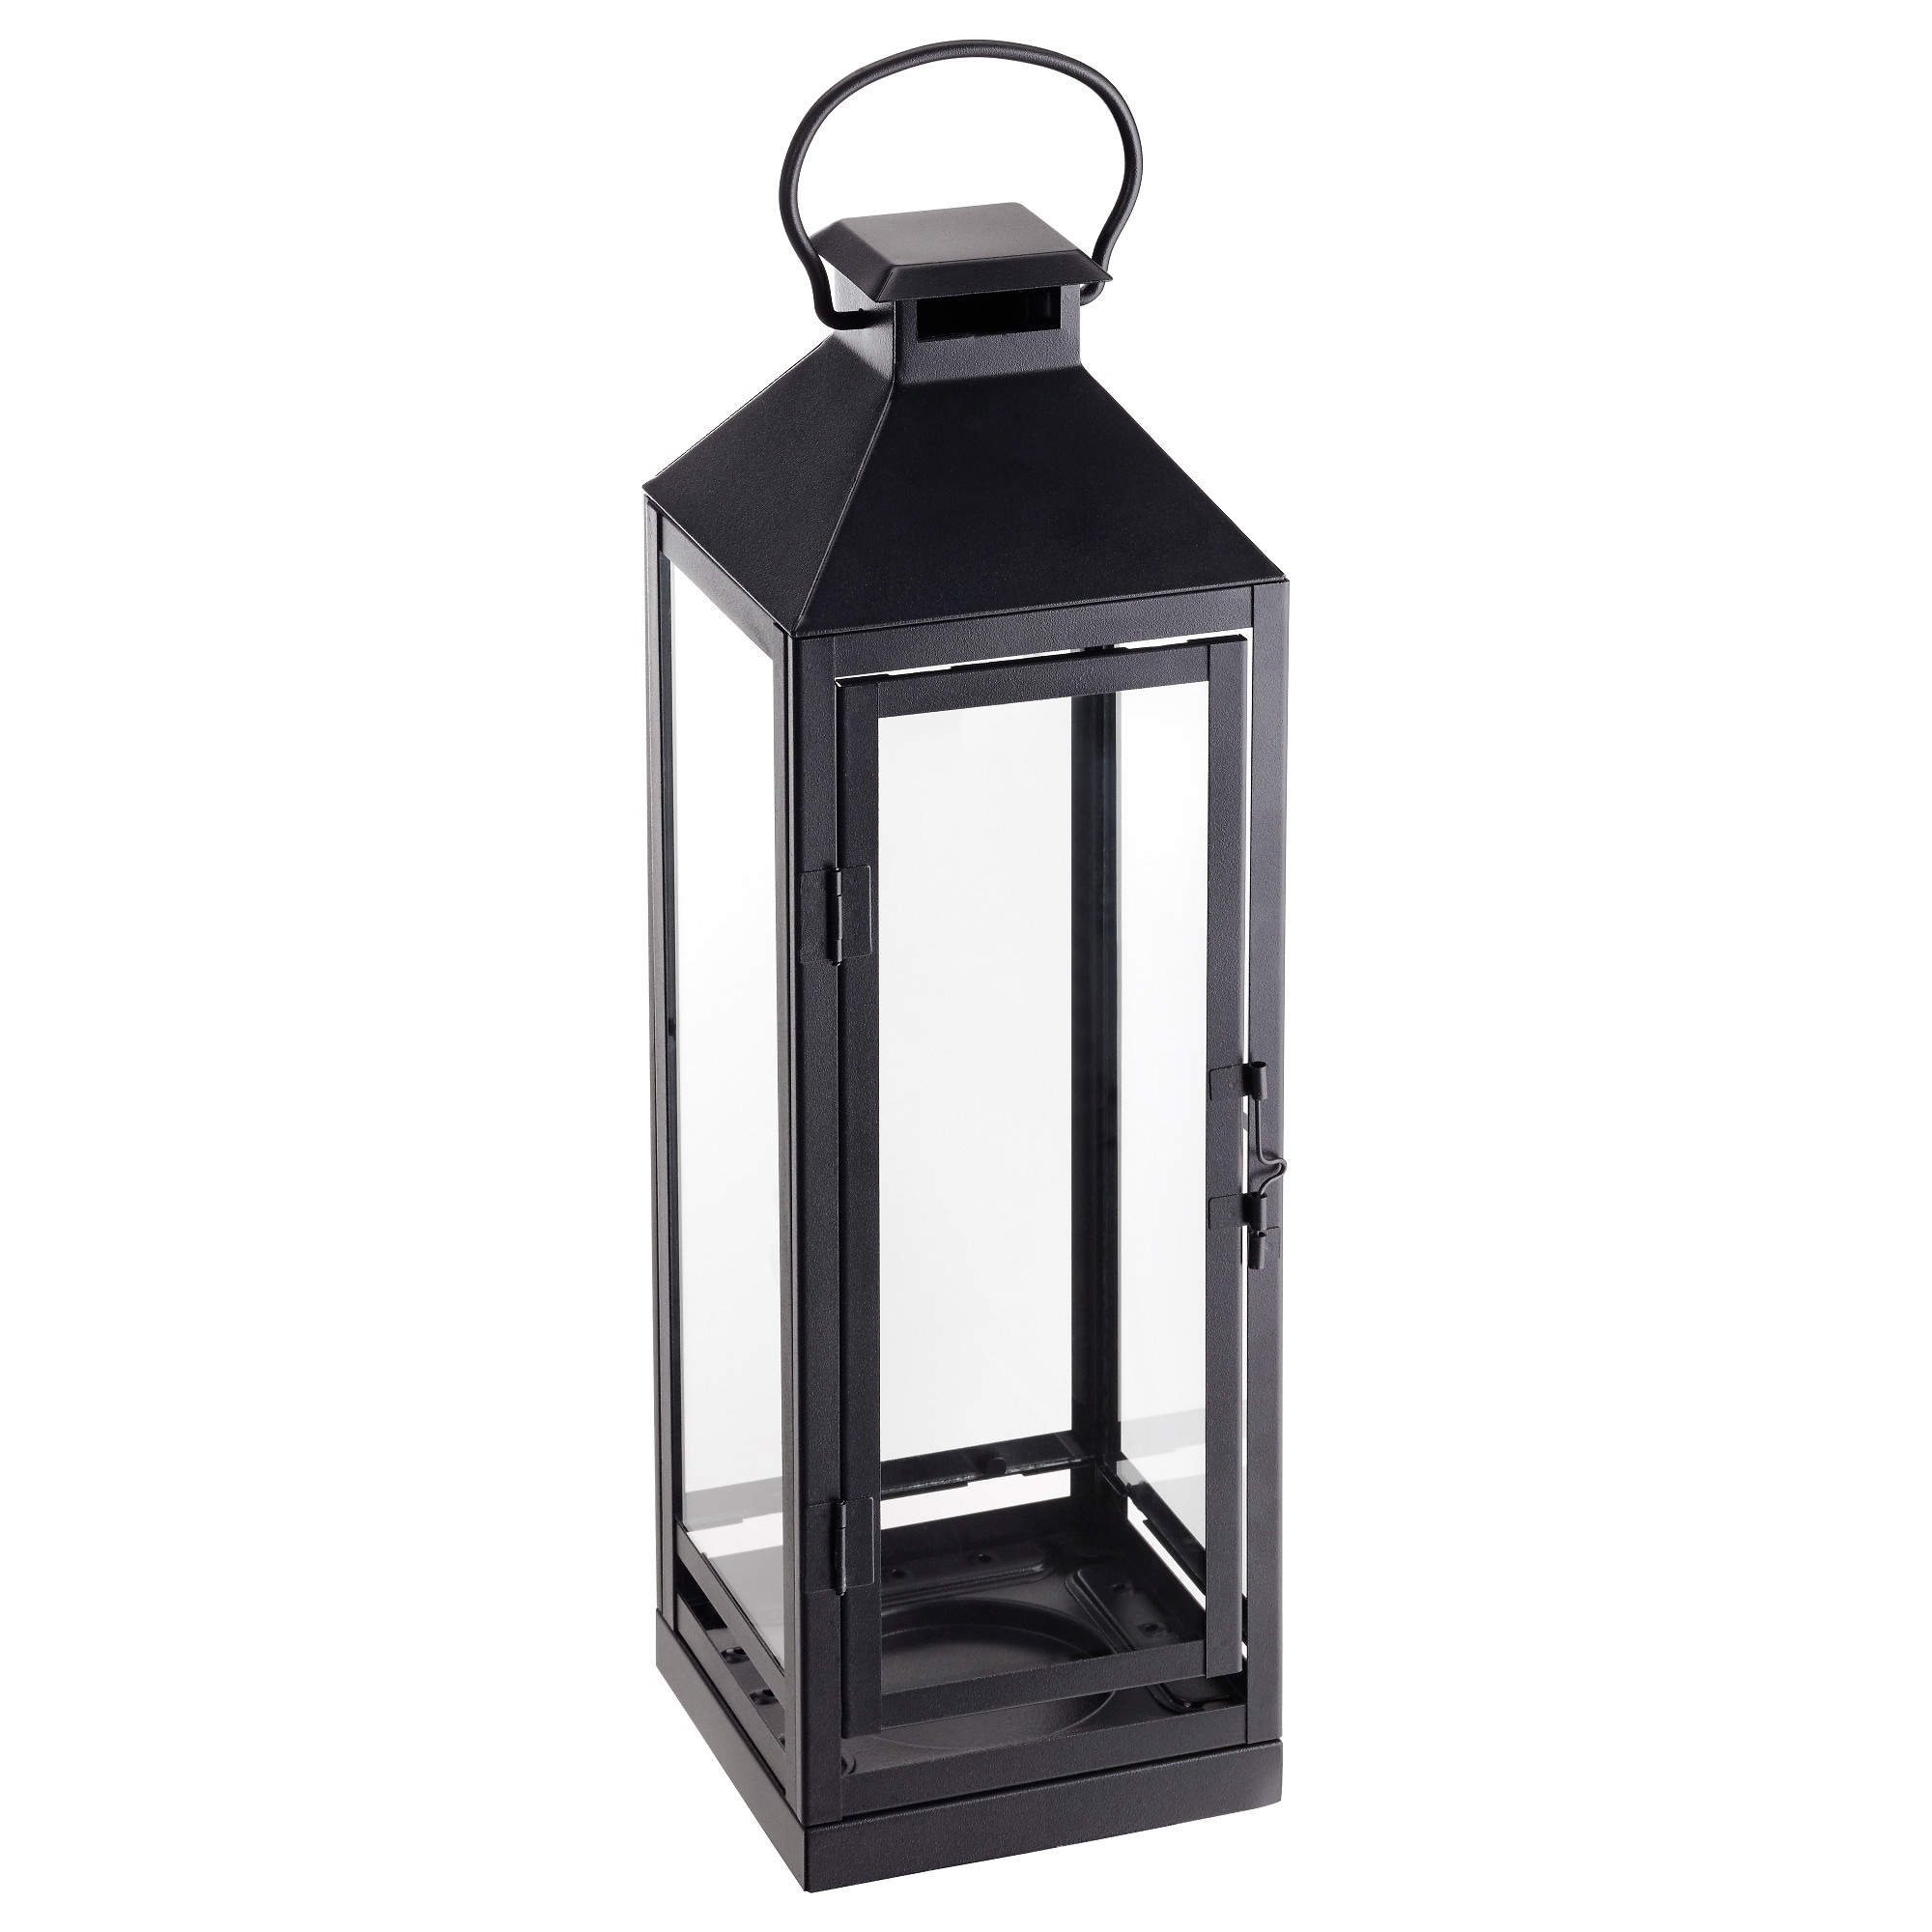 2019 Outdoor Empty Lanterns Pertaining To Lanterns & Candle Lanterns – Ikea (View 3 of 20)